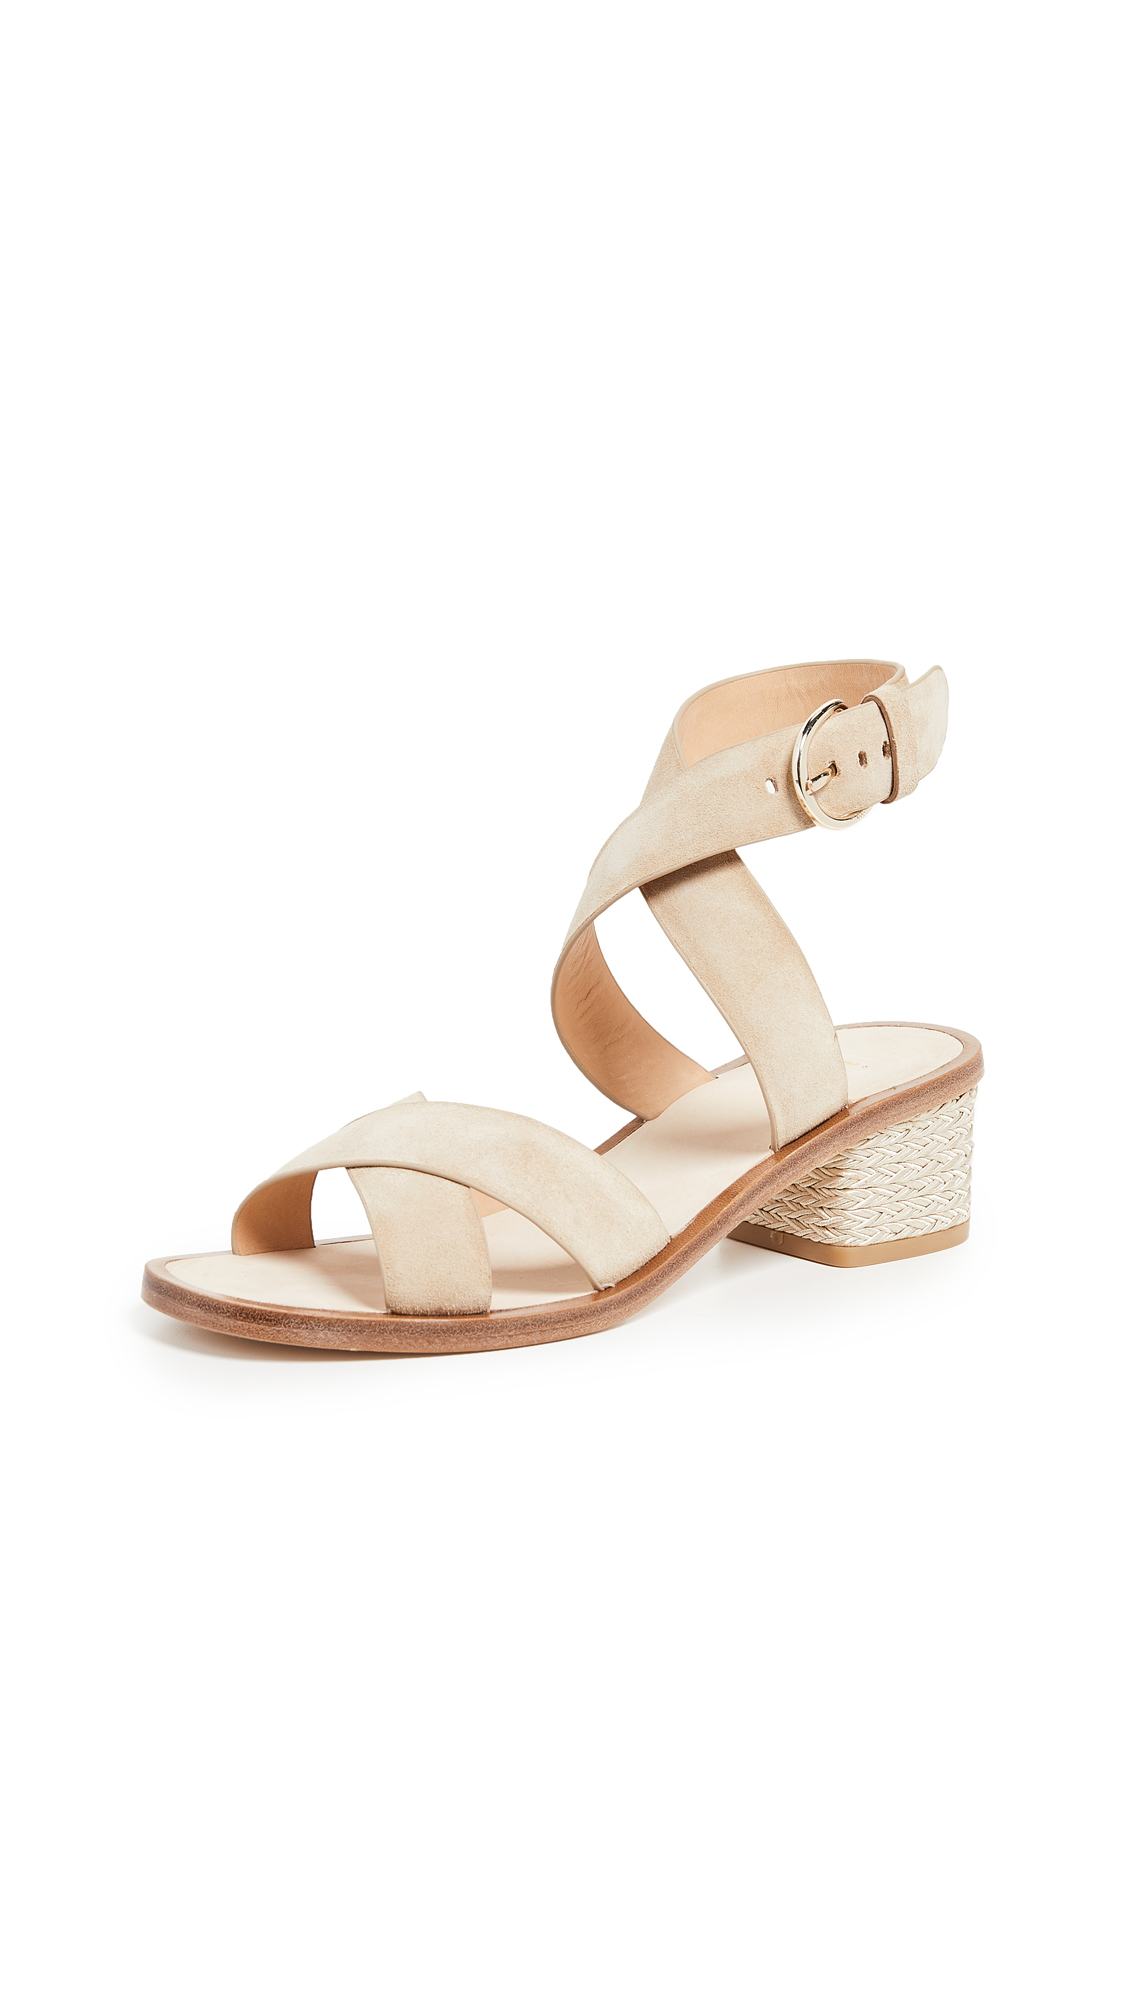 Joie Rana Sandals In Sand